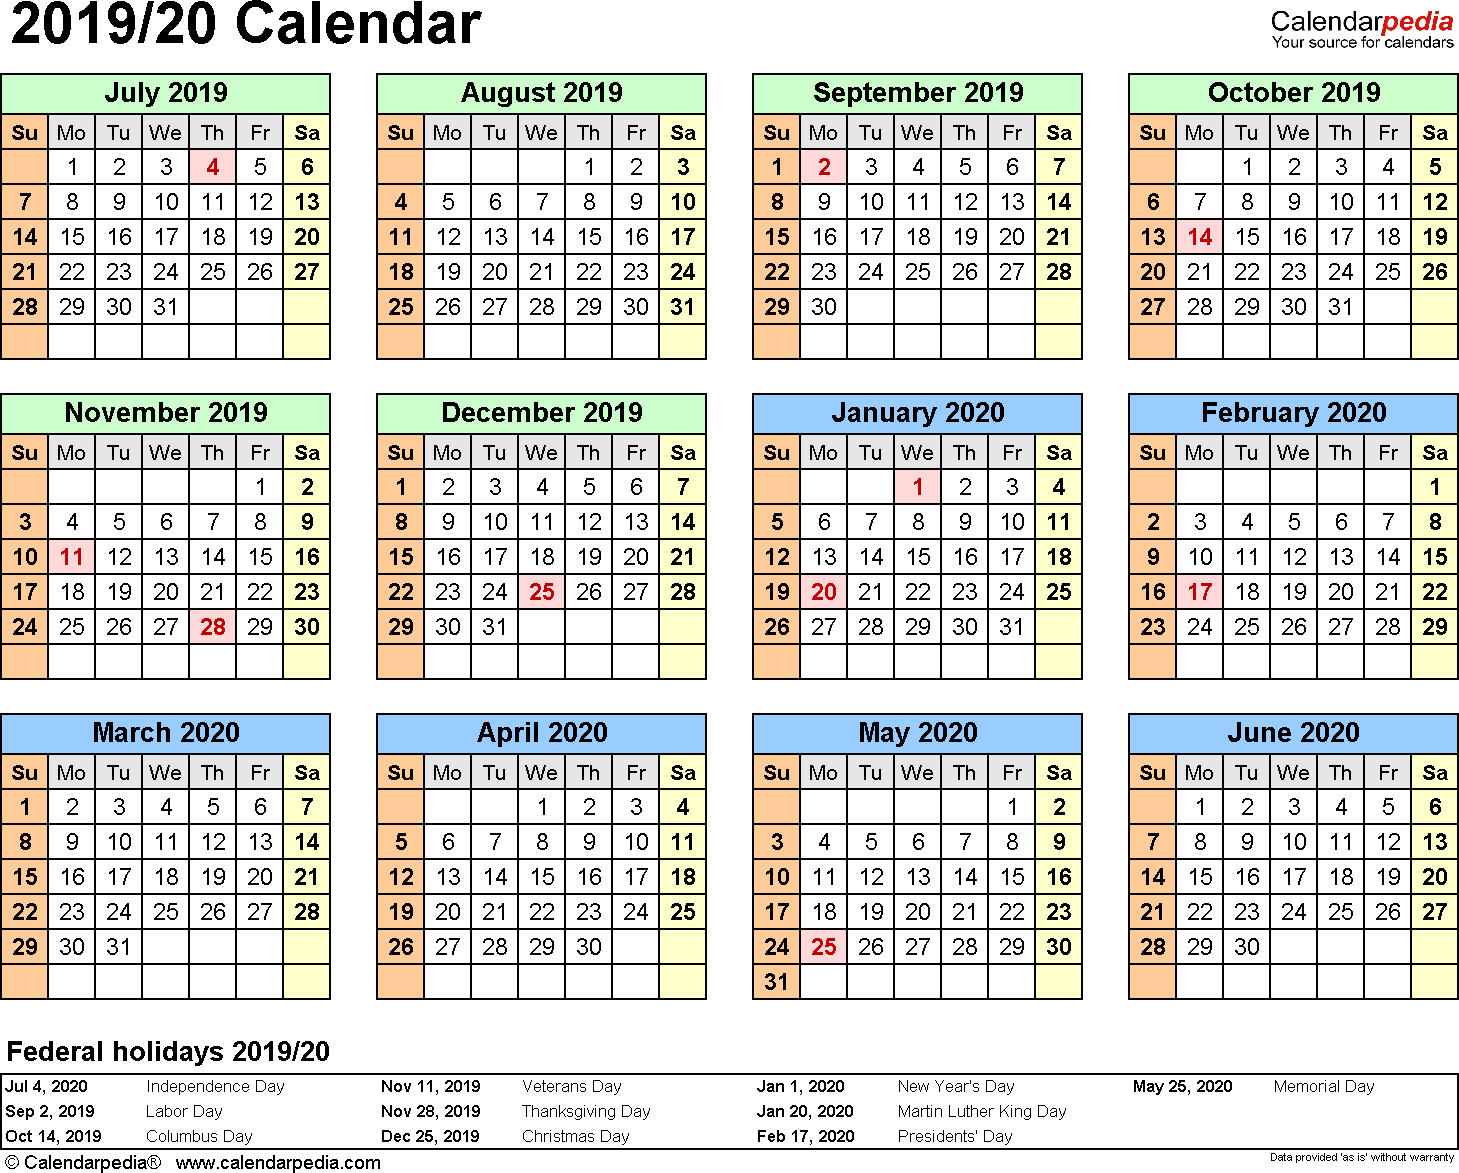 Split Year Calendar 2019/20 (July To June) - Word Templates in Year To A Page 2019/2020 Calender